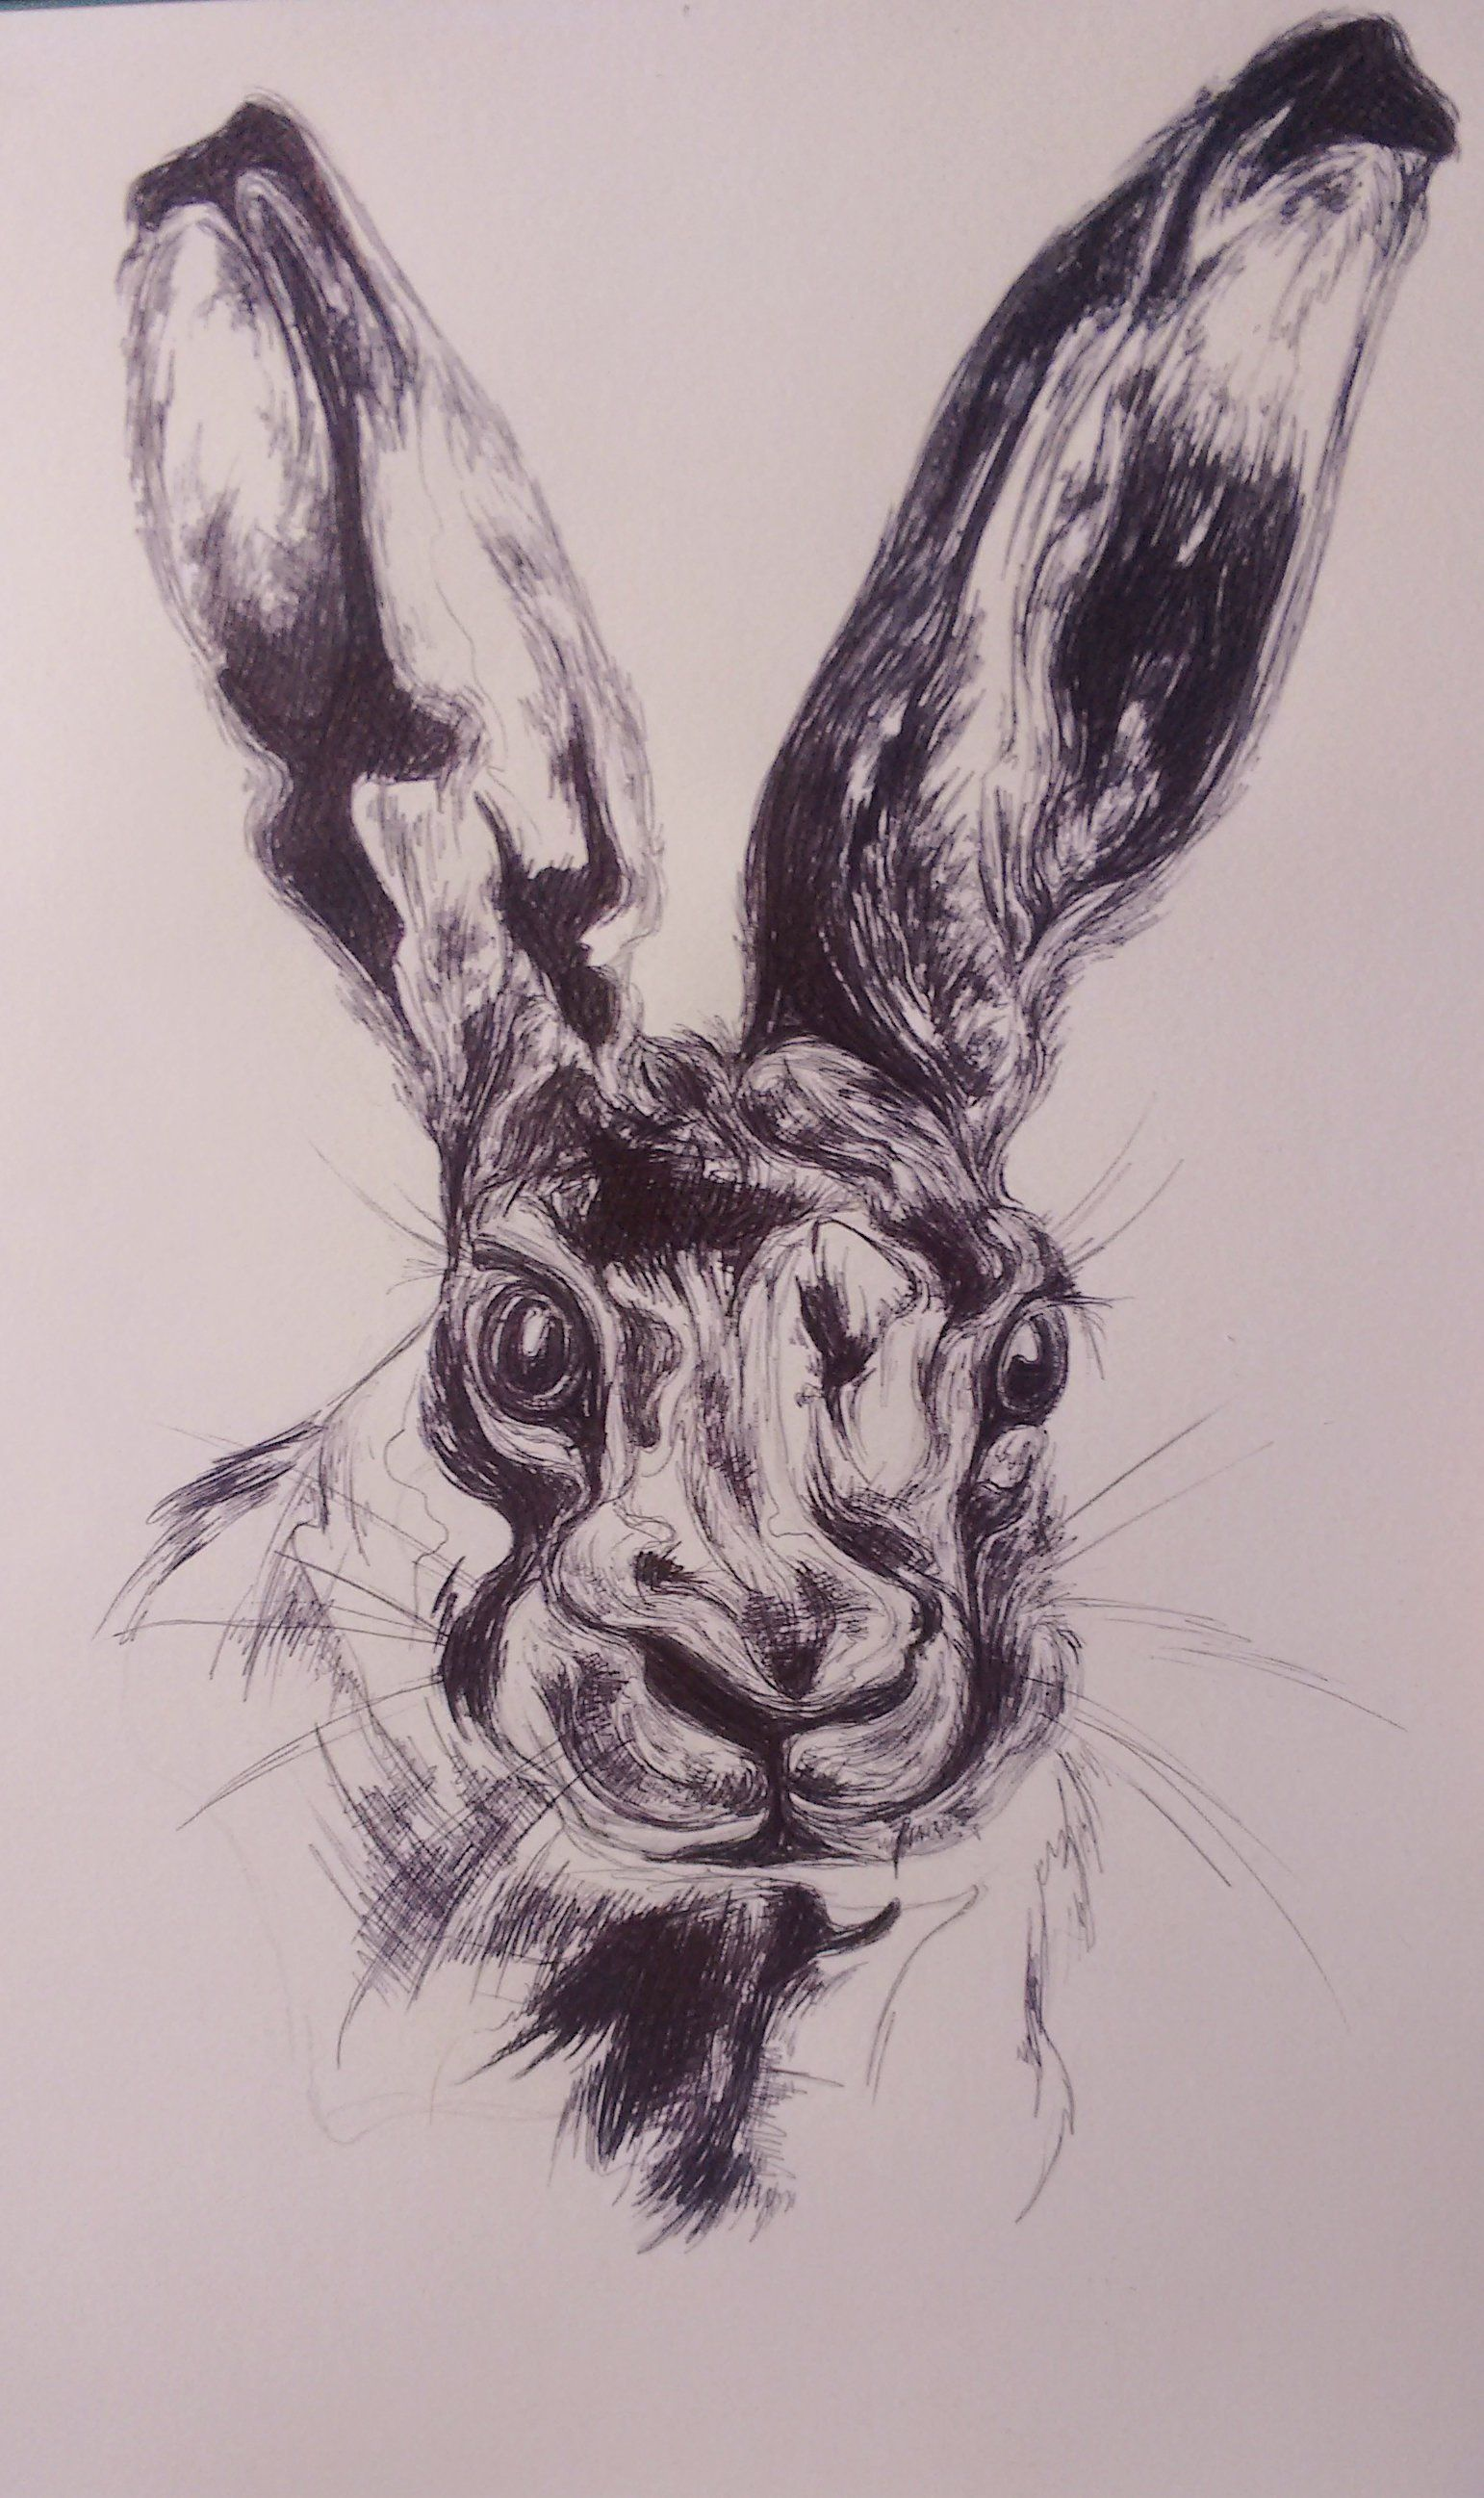 pretty hare, sketch in biro. To commission a piece visit my website, www.katiemonton.com